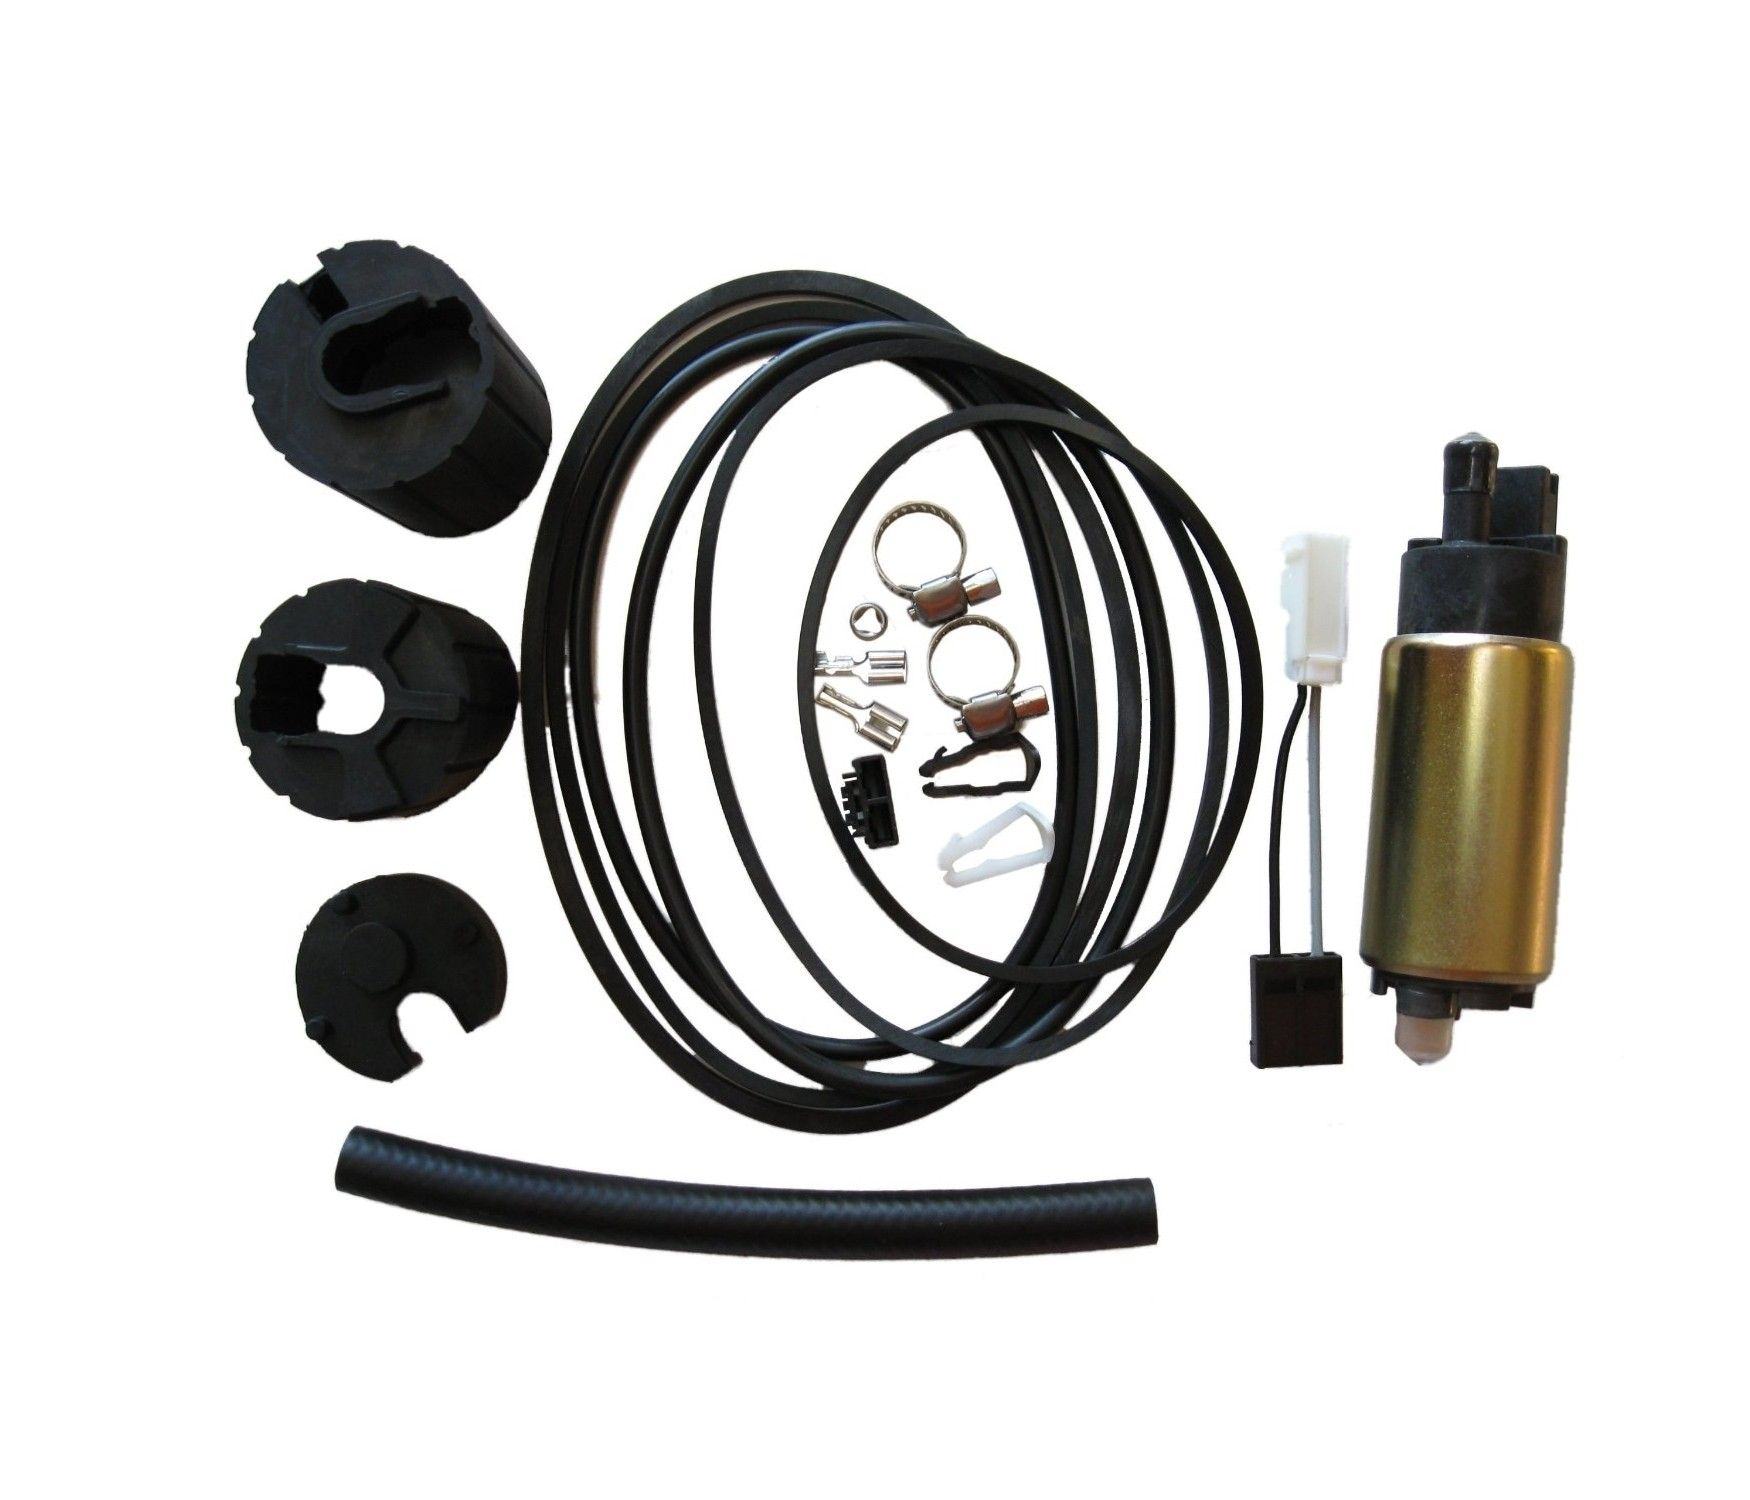 Ford Ranger Electric Fuel Pump Replacement Airtex Autobest Beck Wiring Terminals 1998 6 Cyl 30l F1482 W Wide Electrical Includes Tank Seal Strainer Required To Validate The Warranty